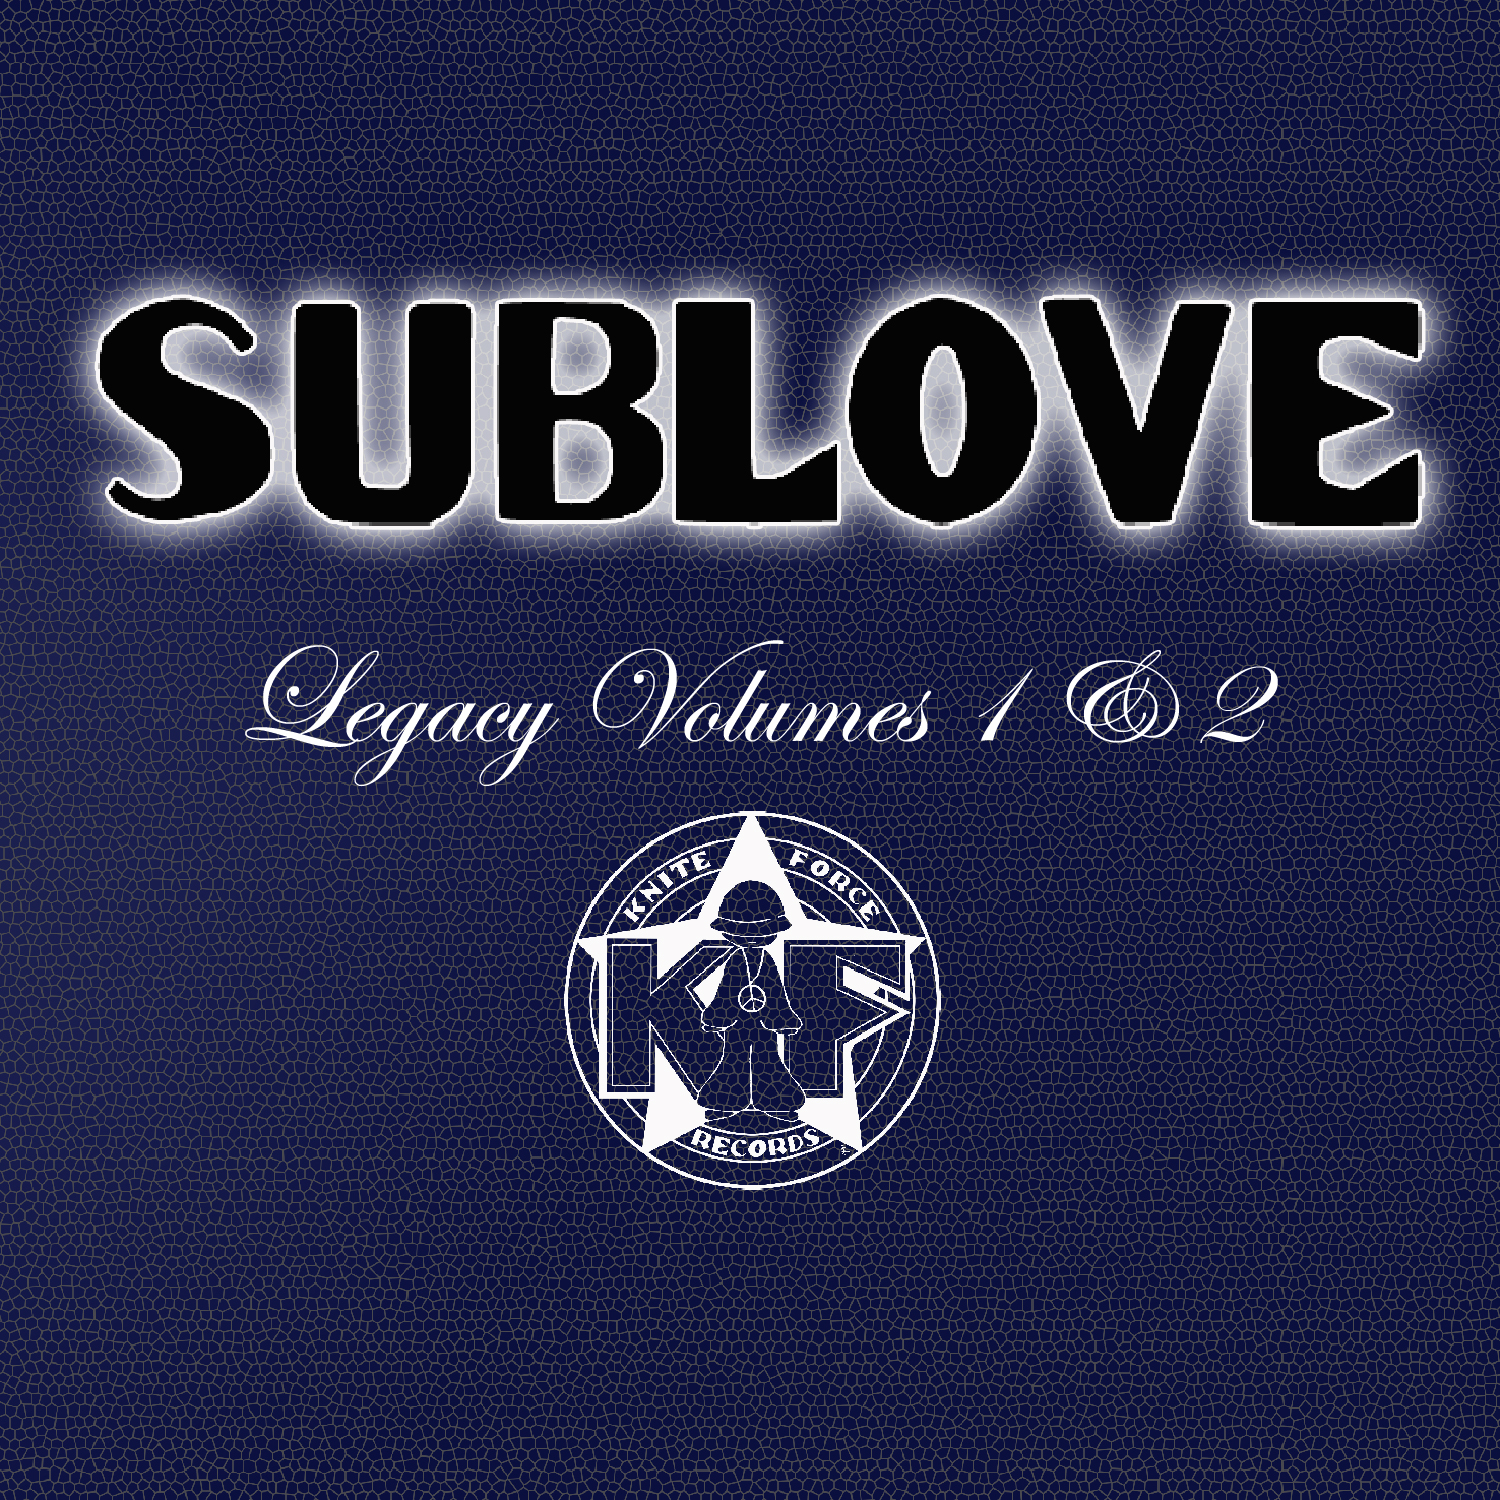 [KFCD105] Sublove - Sublove Legacy Vol.1 & Vol.2 (Digital Only)